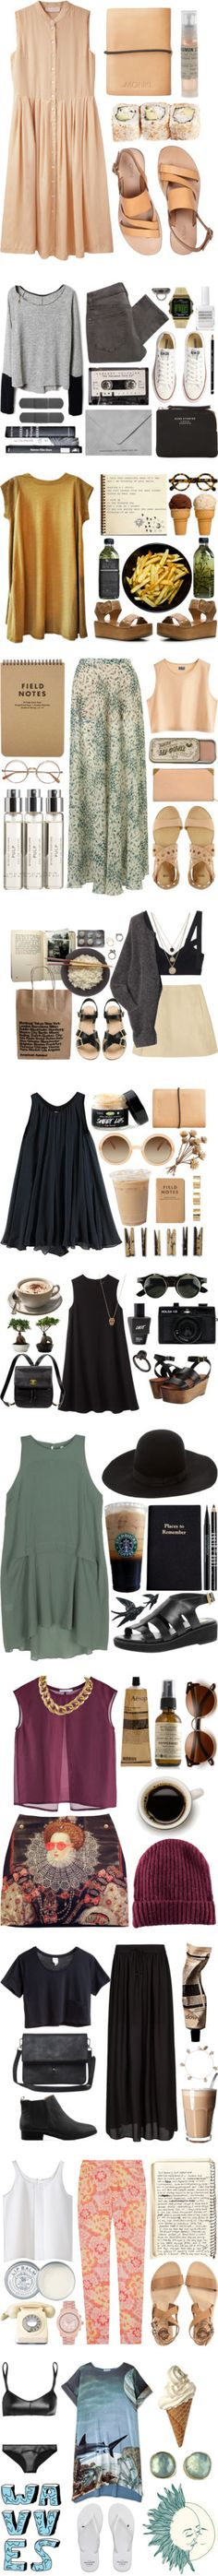 """Winning sets from my group's past contests!"" by vv0lf ❤ liked on Polyvore"